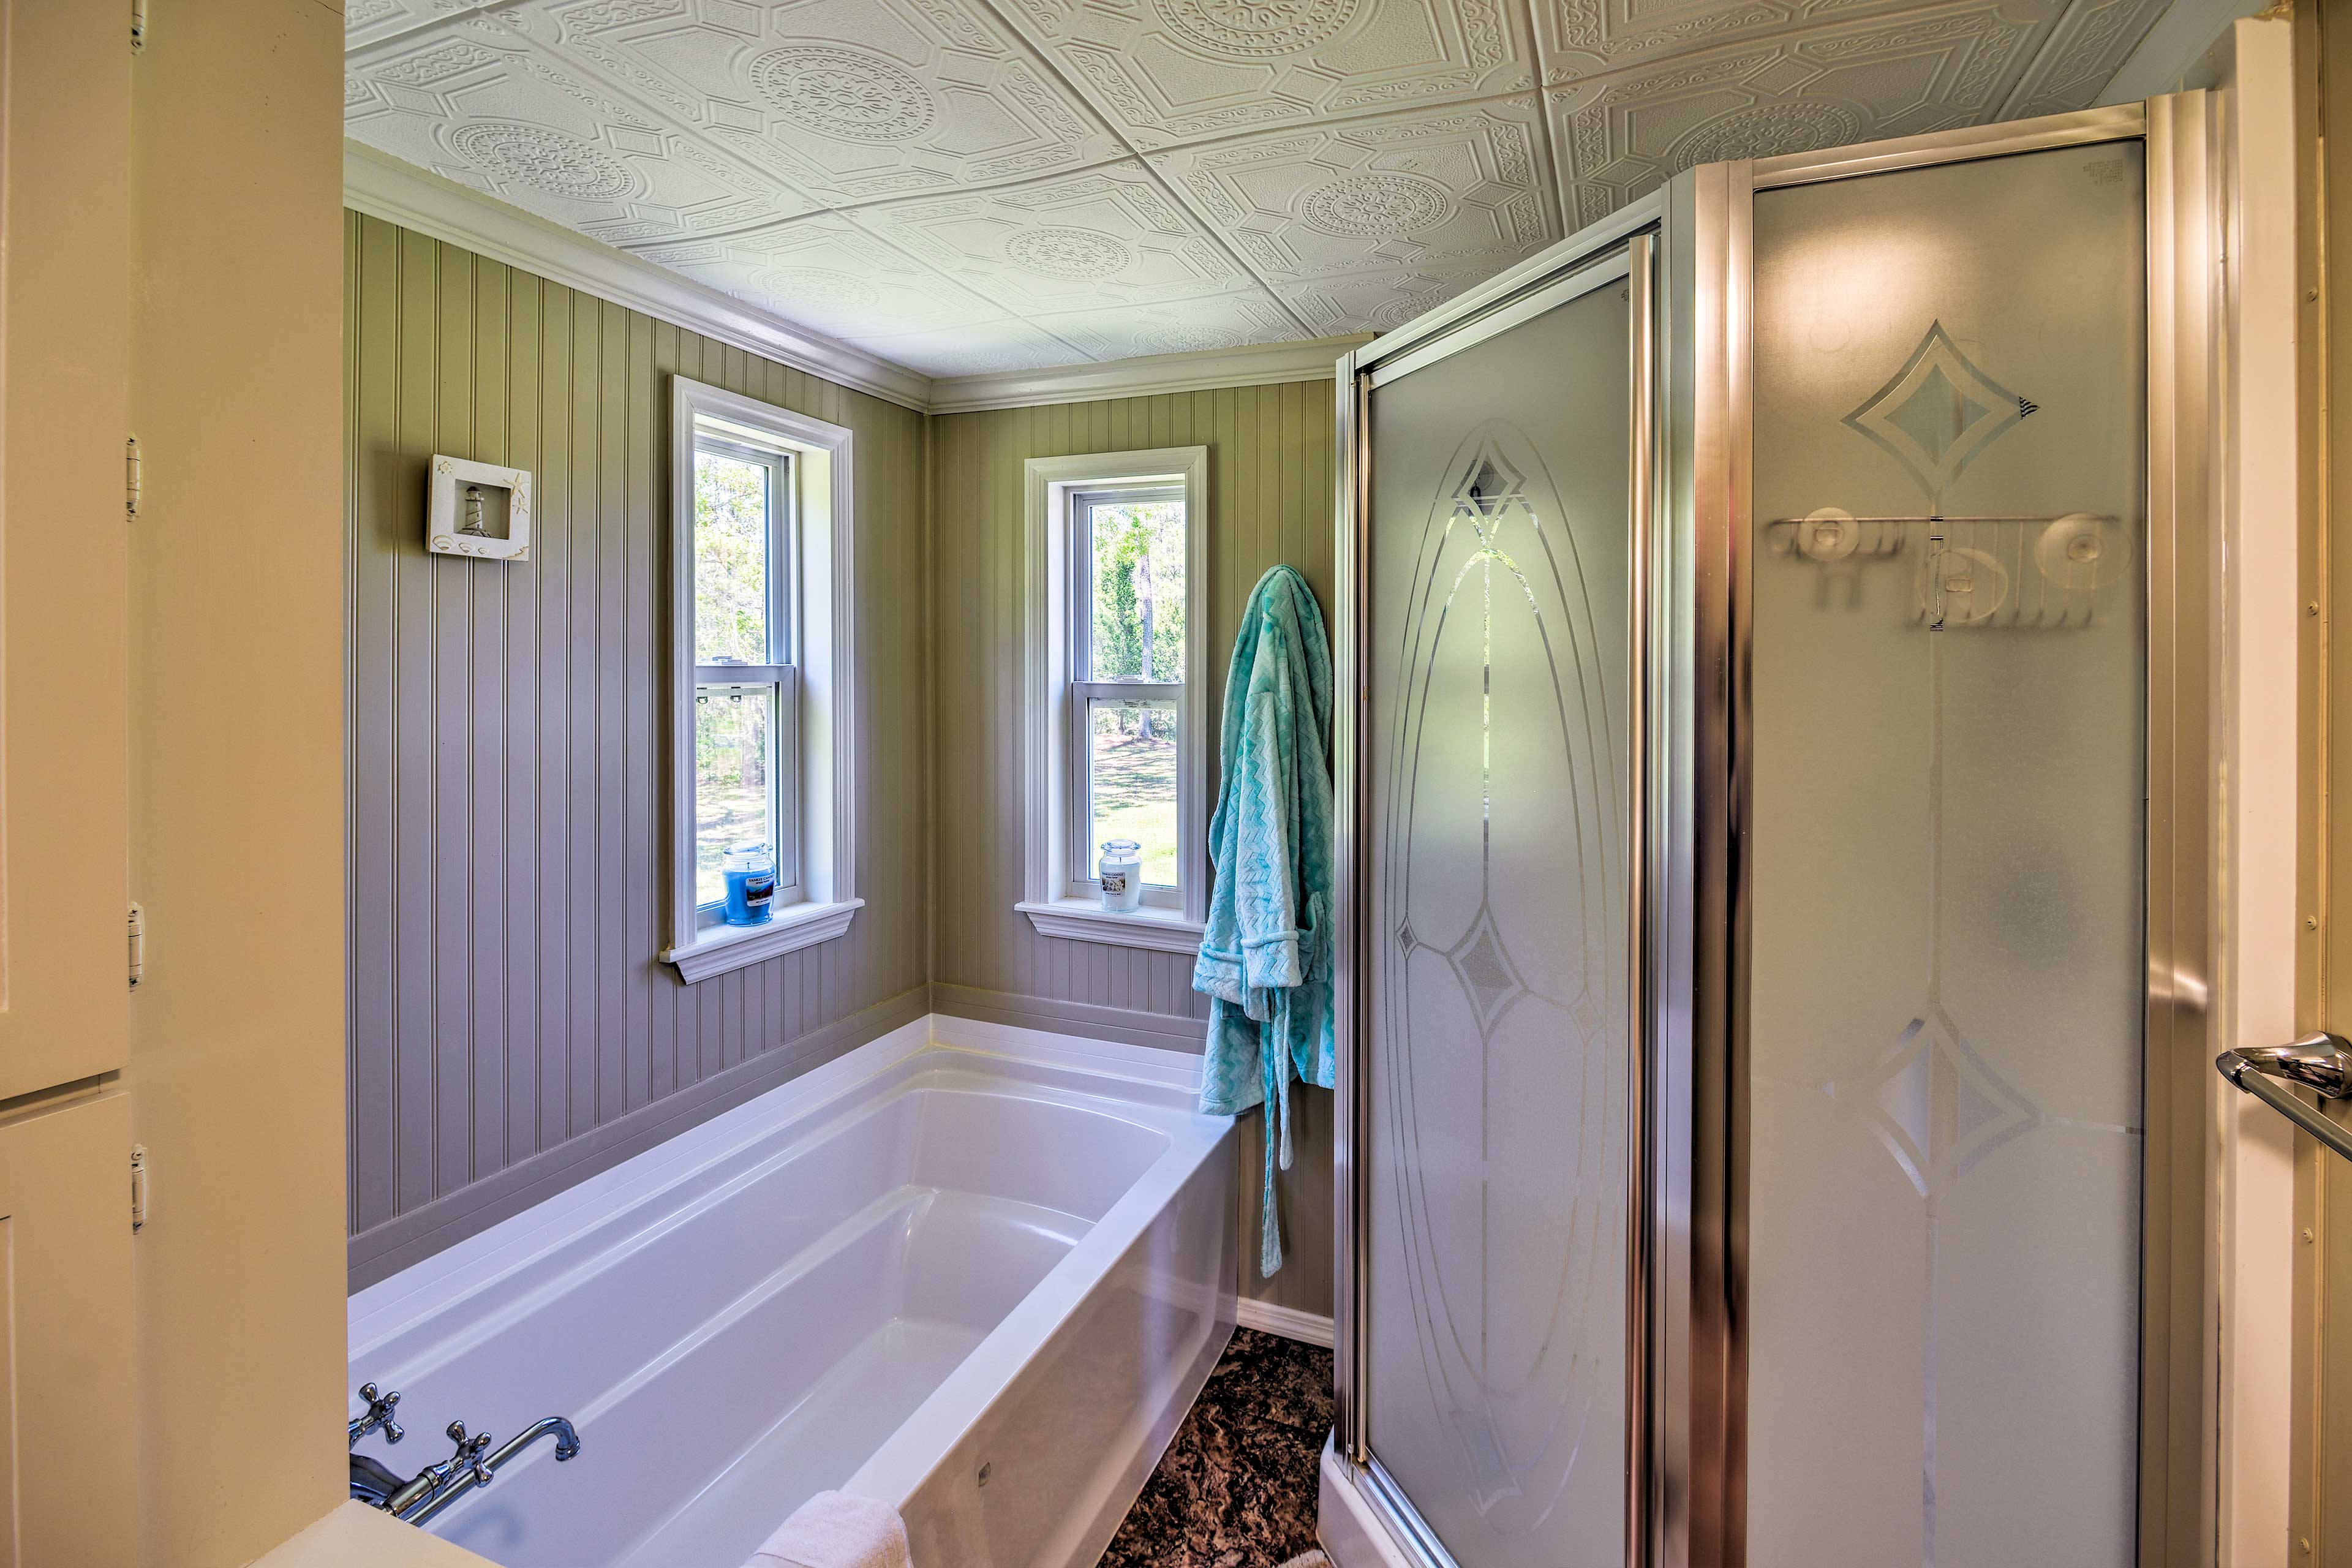 Rinse off in the walk-in shower or soak in the tub.